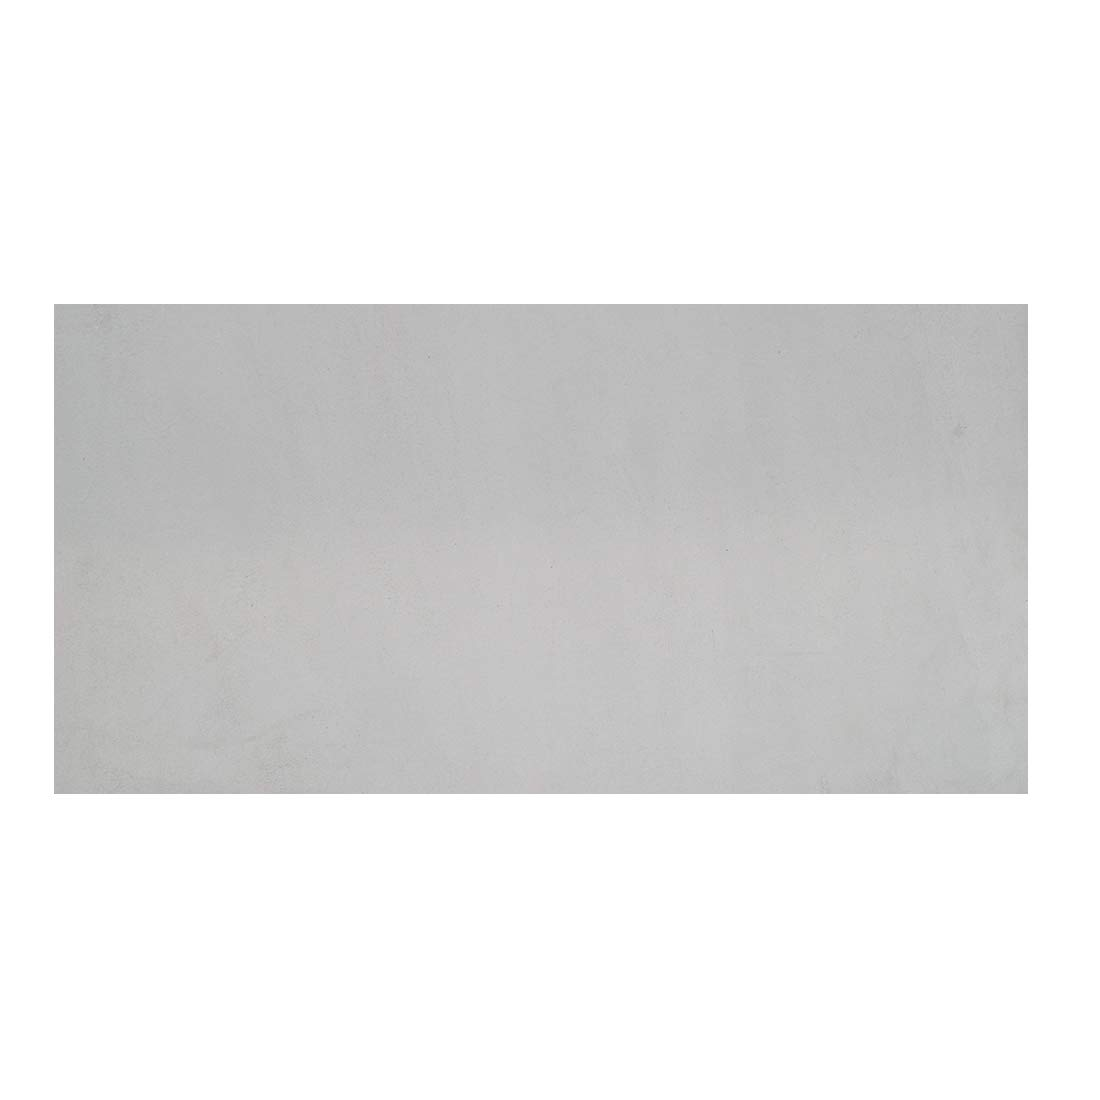 Leather Square (12 x 24 in.) for Crafts/Tooling/Hobby Workshop, Medium Weight (1.6mm) by Hide & Drink :: White